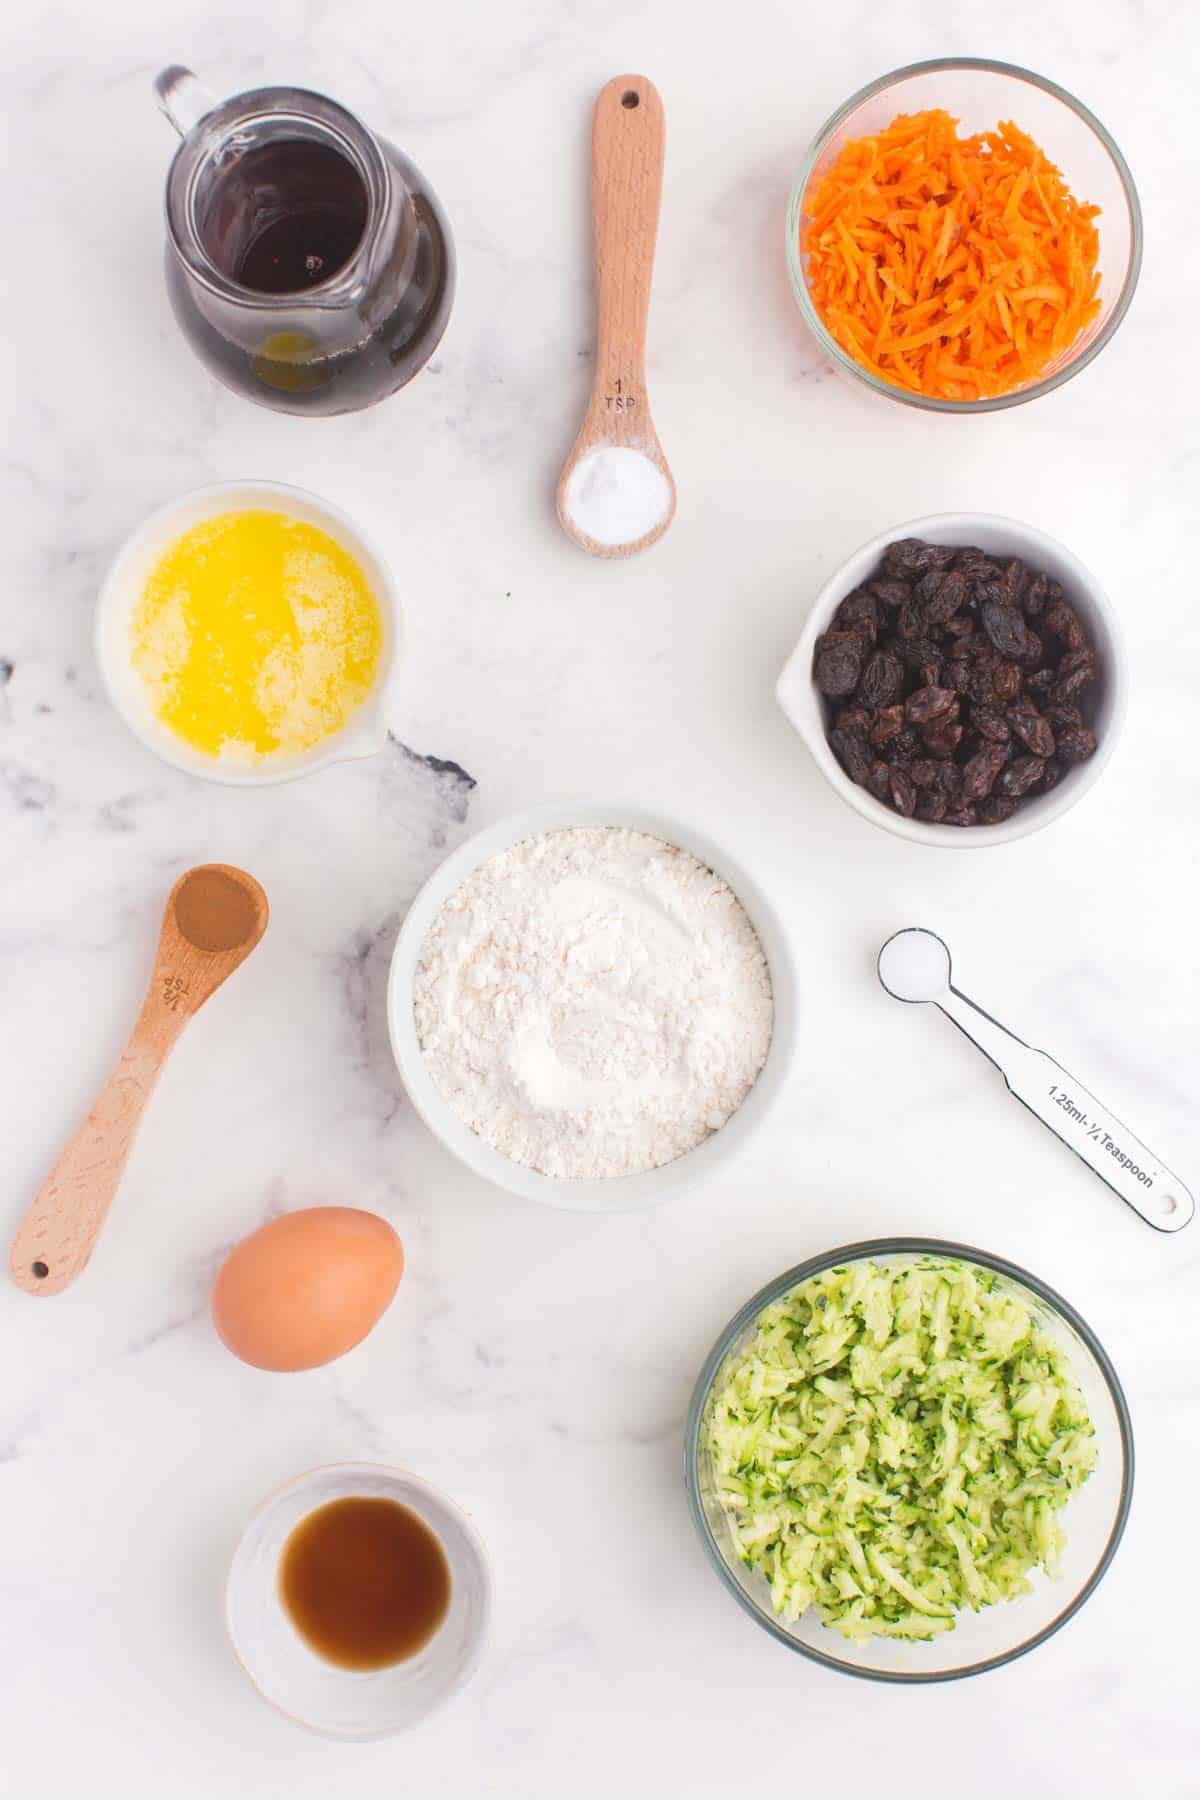 bowls of flour, shredded carrots and zucchini, vanilla extract, raisins, and melted butter, a pitcher of maple syrup, an egg, and spoons with cinnamon, salt, and baking soda on a marble tabletop